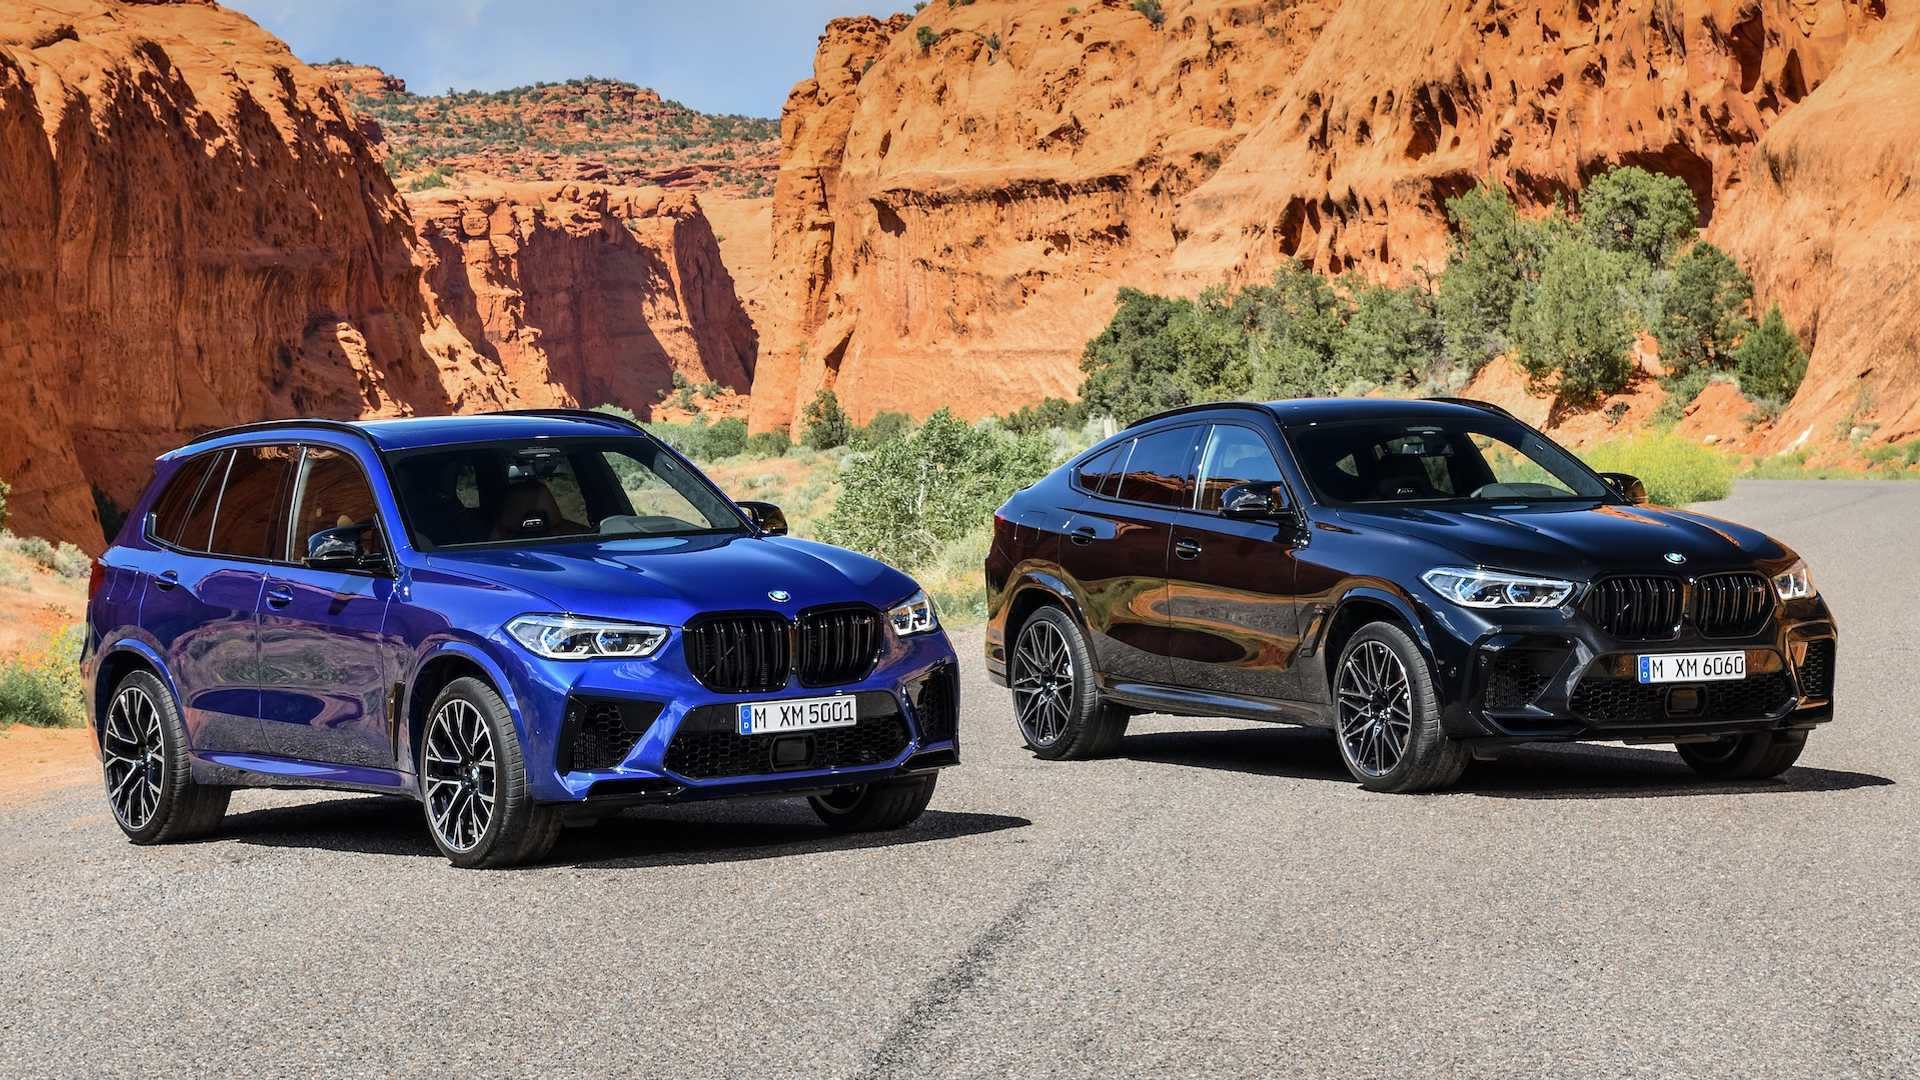 2020 bmw x5 m competition (1)